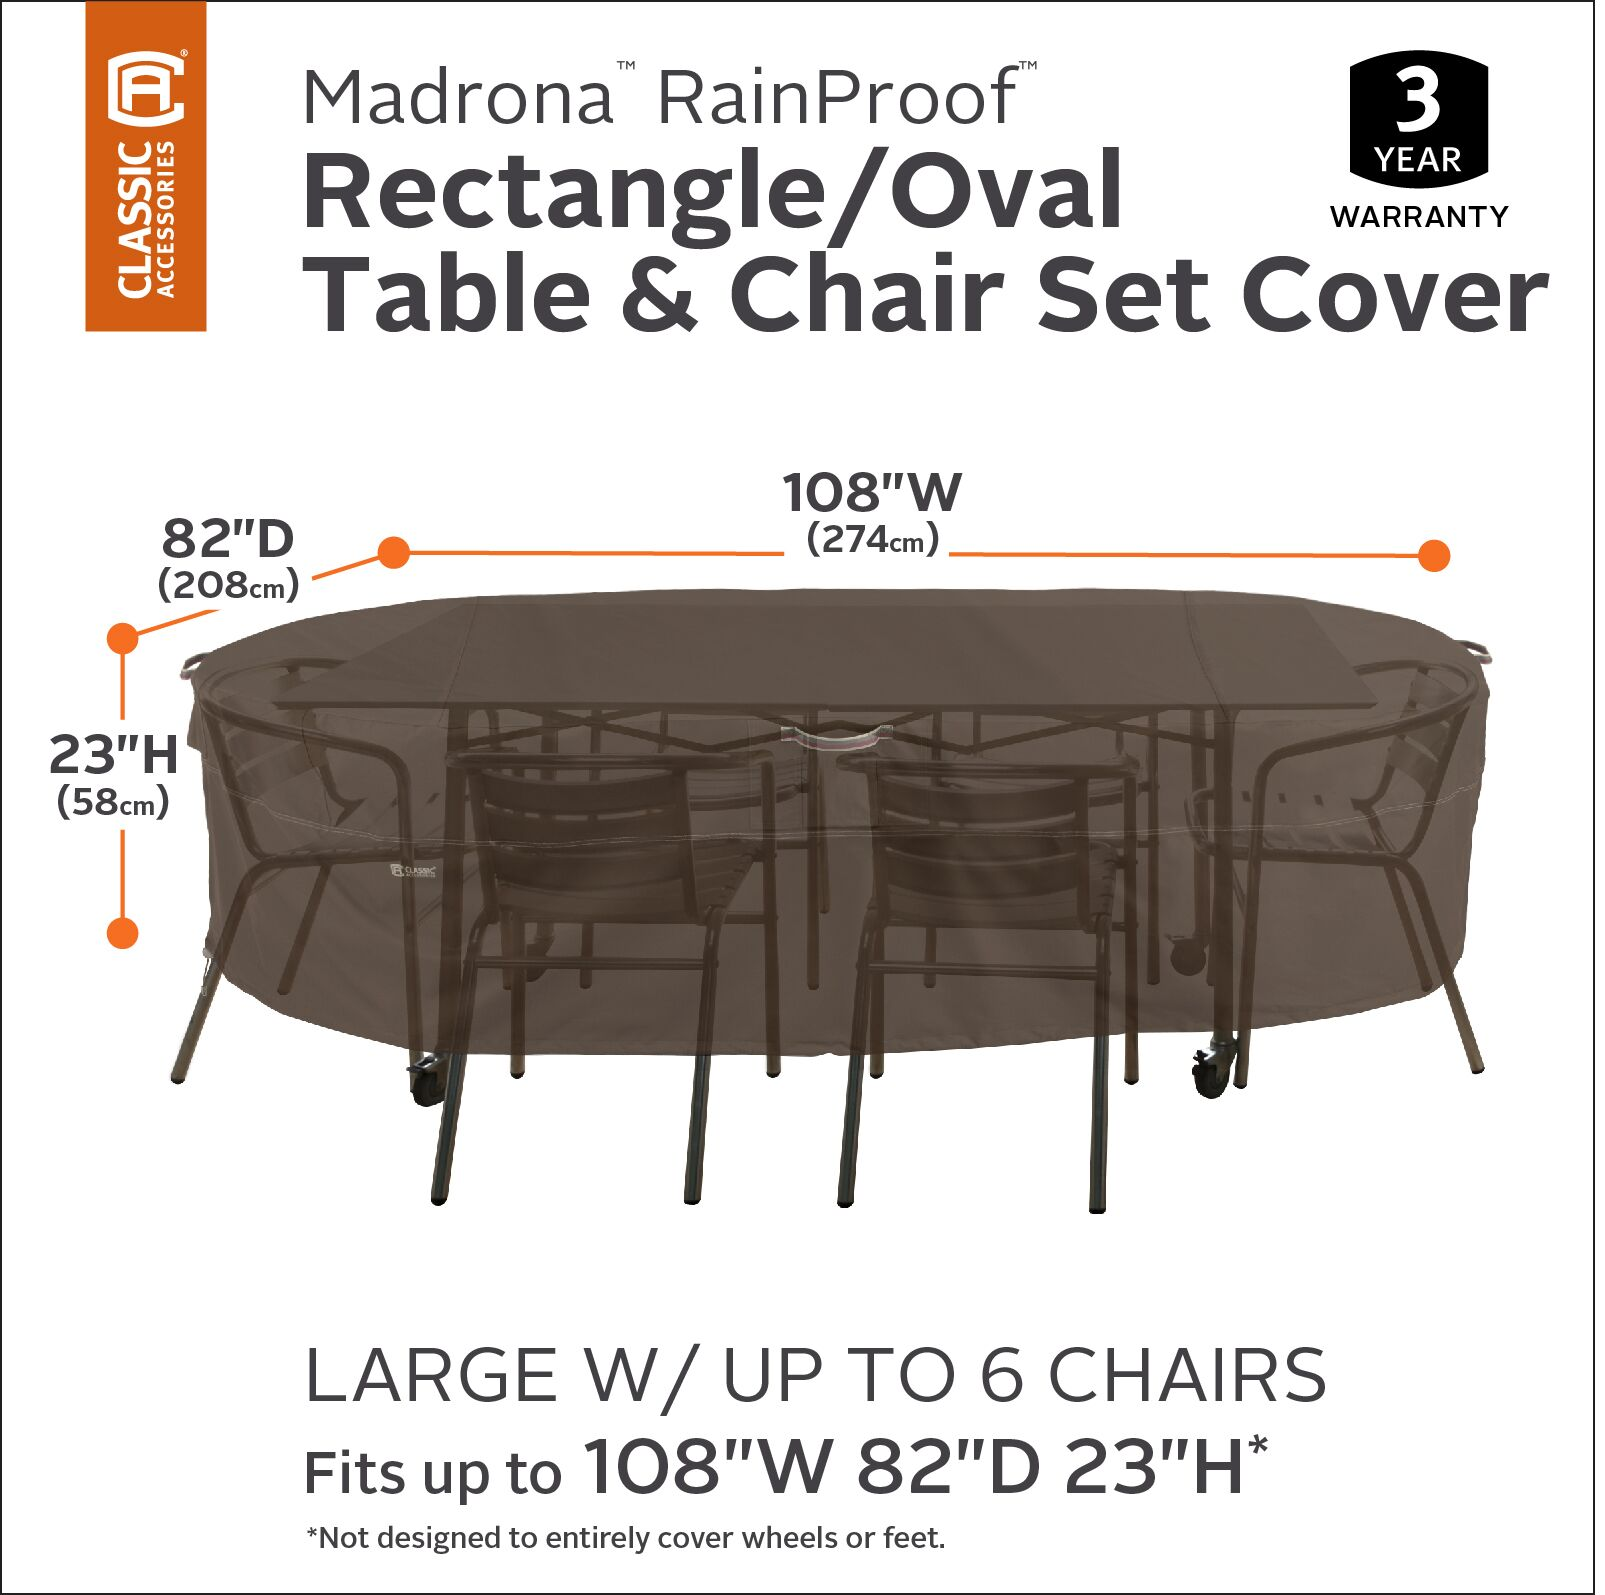 Madrona Rain Proof Rectangular/Oval Patio Dining Set Cover Size: 24